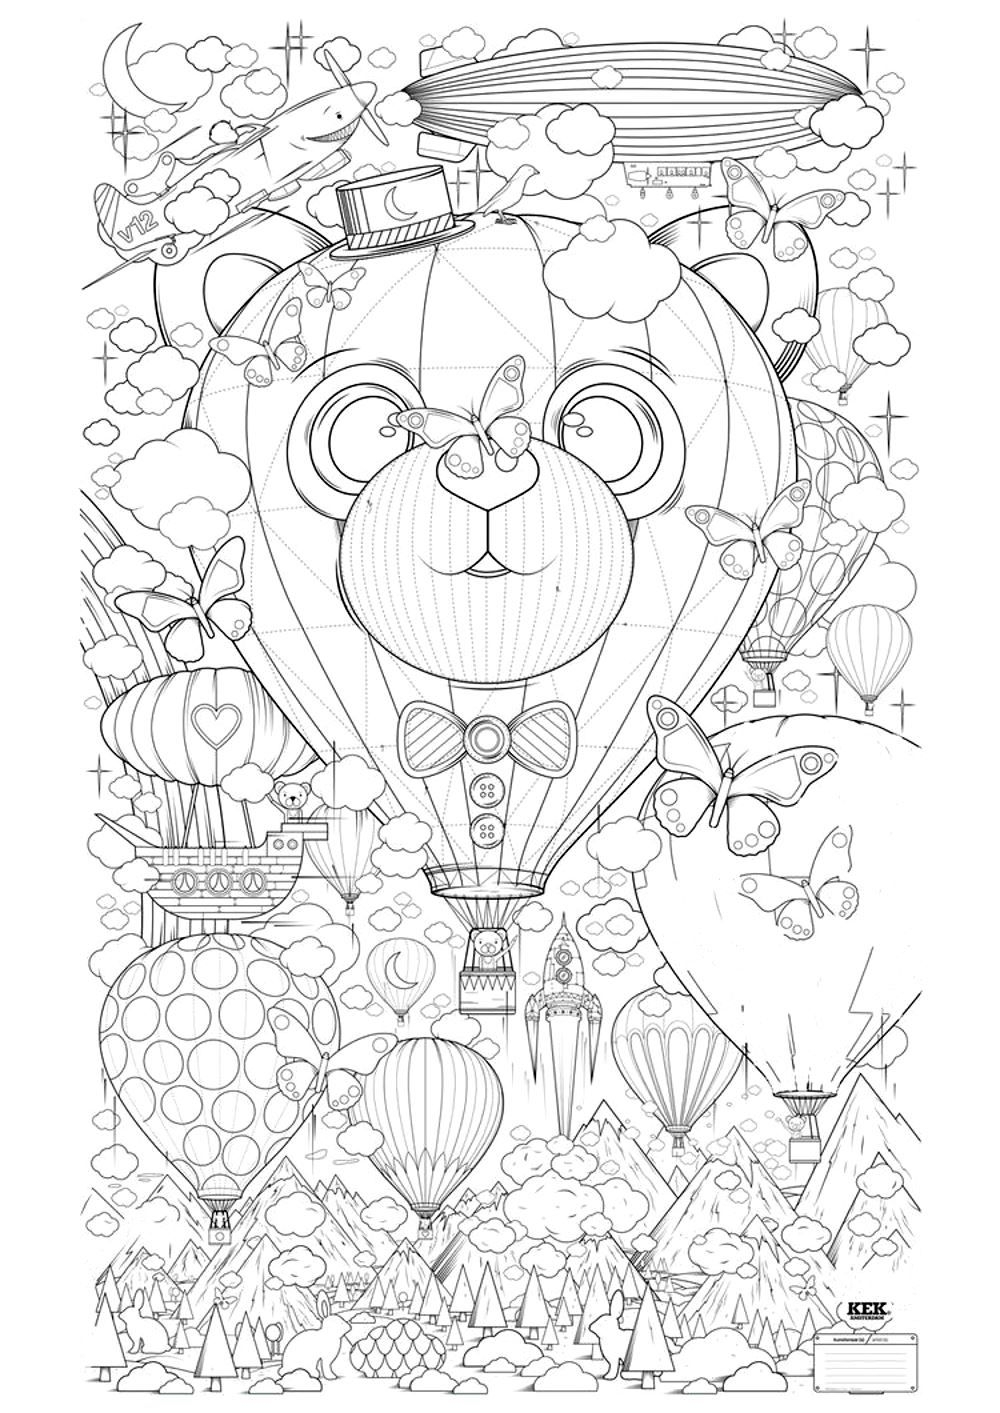 Printable Printable Hot Air Balloon Coloring Pages for Kids Free Printable Of Fresh Hot Air Balloons Coloring Pages Collection to Print